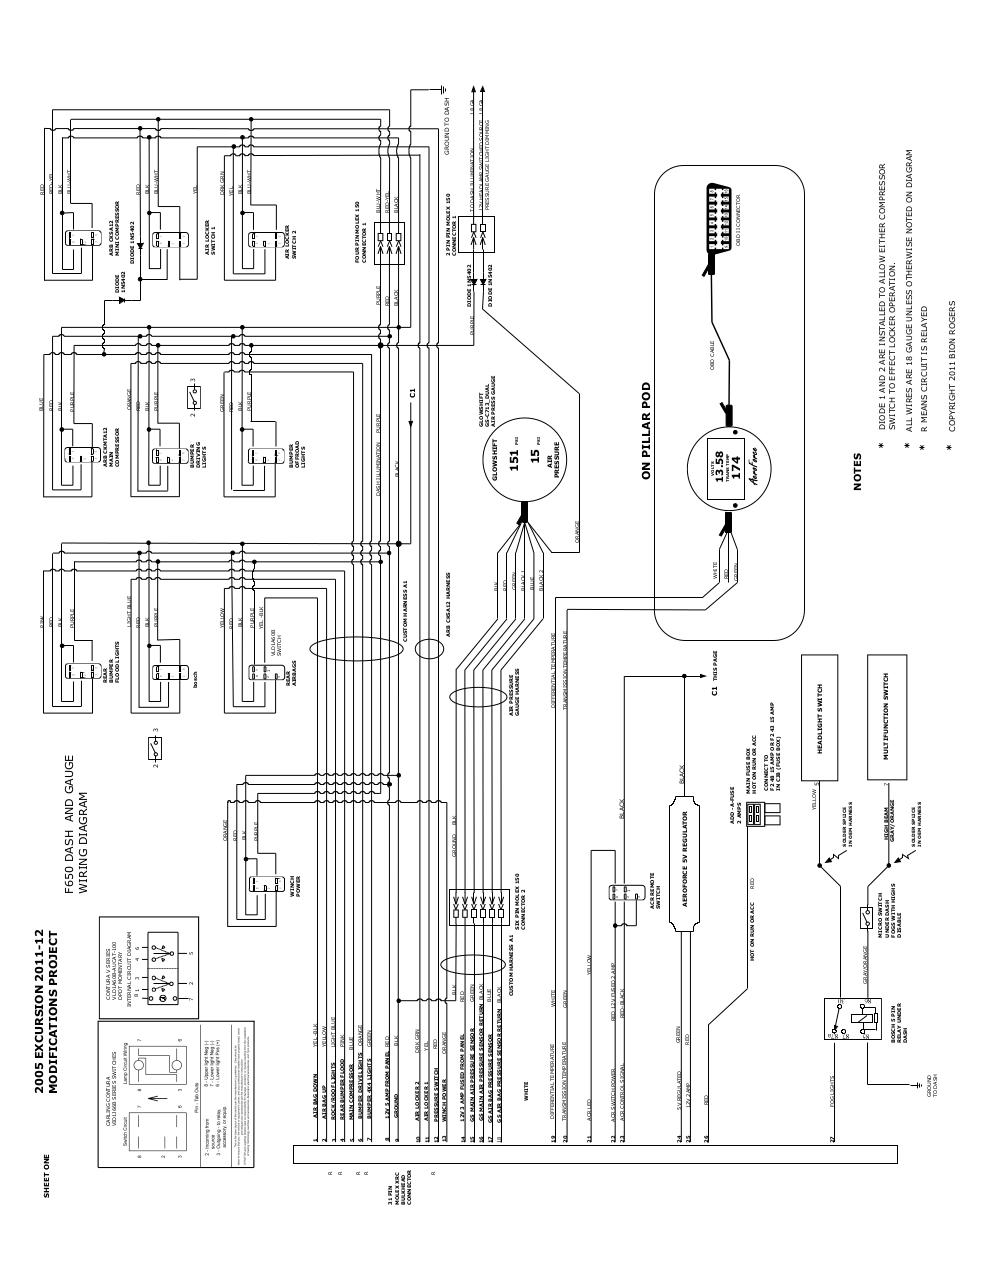 arb air compressor wiring diagram annavernon arb cksa12 compressor wiring diagram